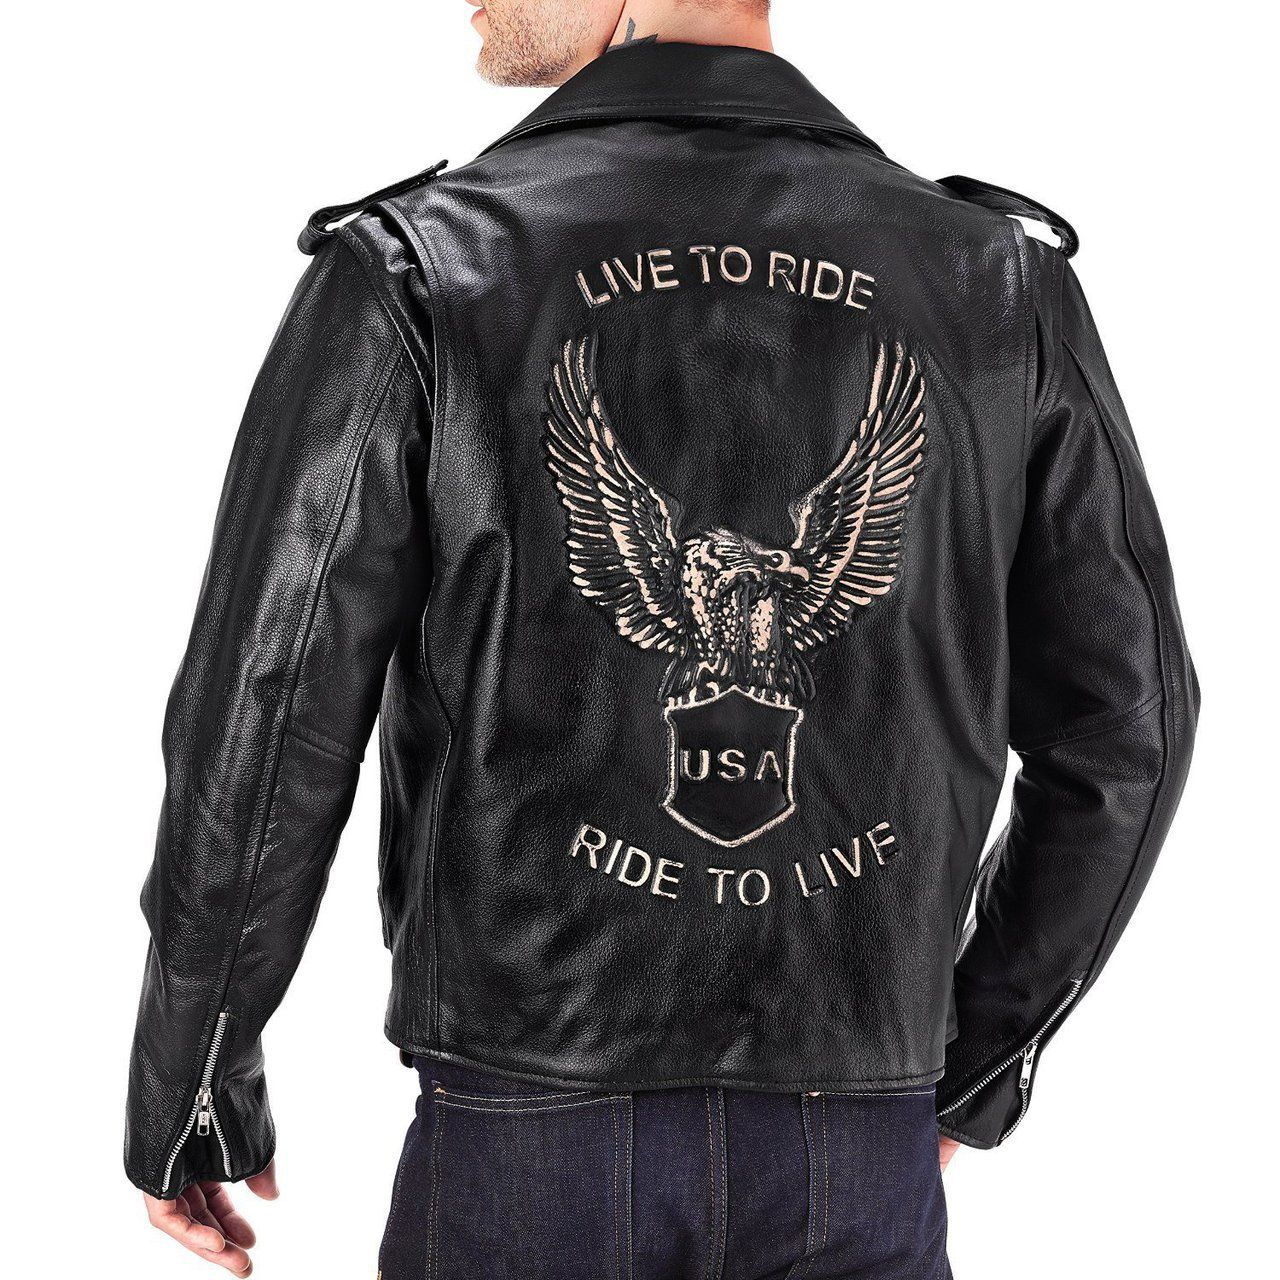 Viking Cycle American Eagle Leather Jacket For Men Leather Jacket Men Leather Motorcycle Jacket Motorcycle Jacket Mens [ 1280 x 1280 Pixel ]